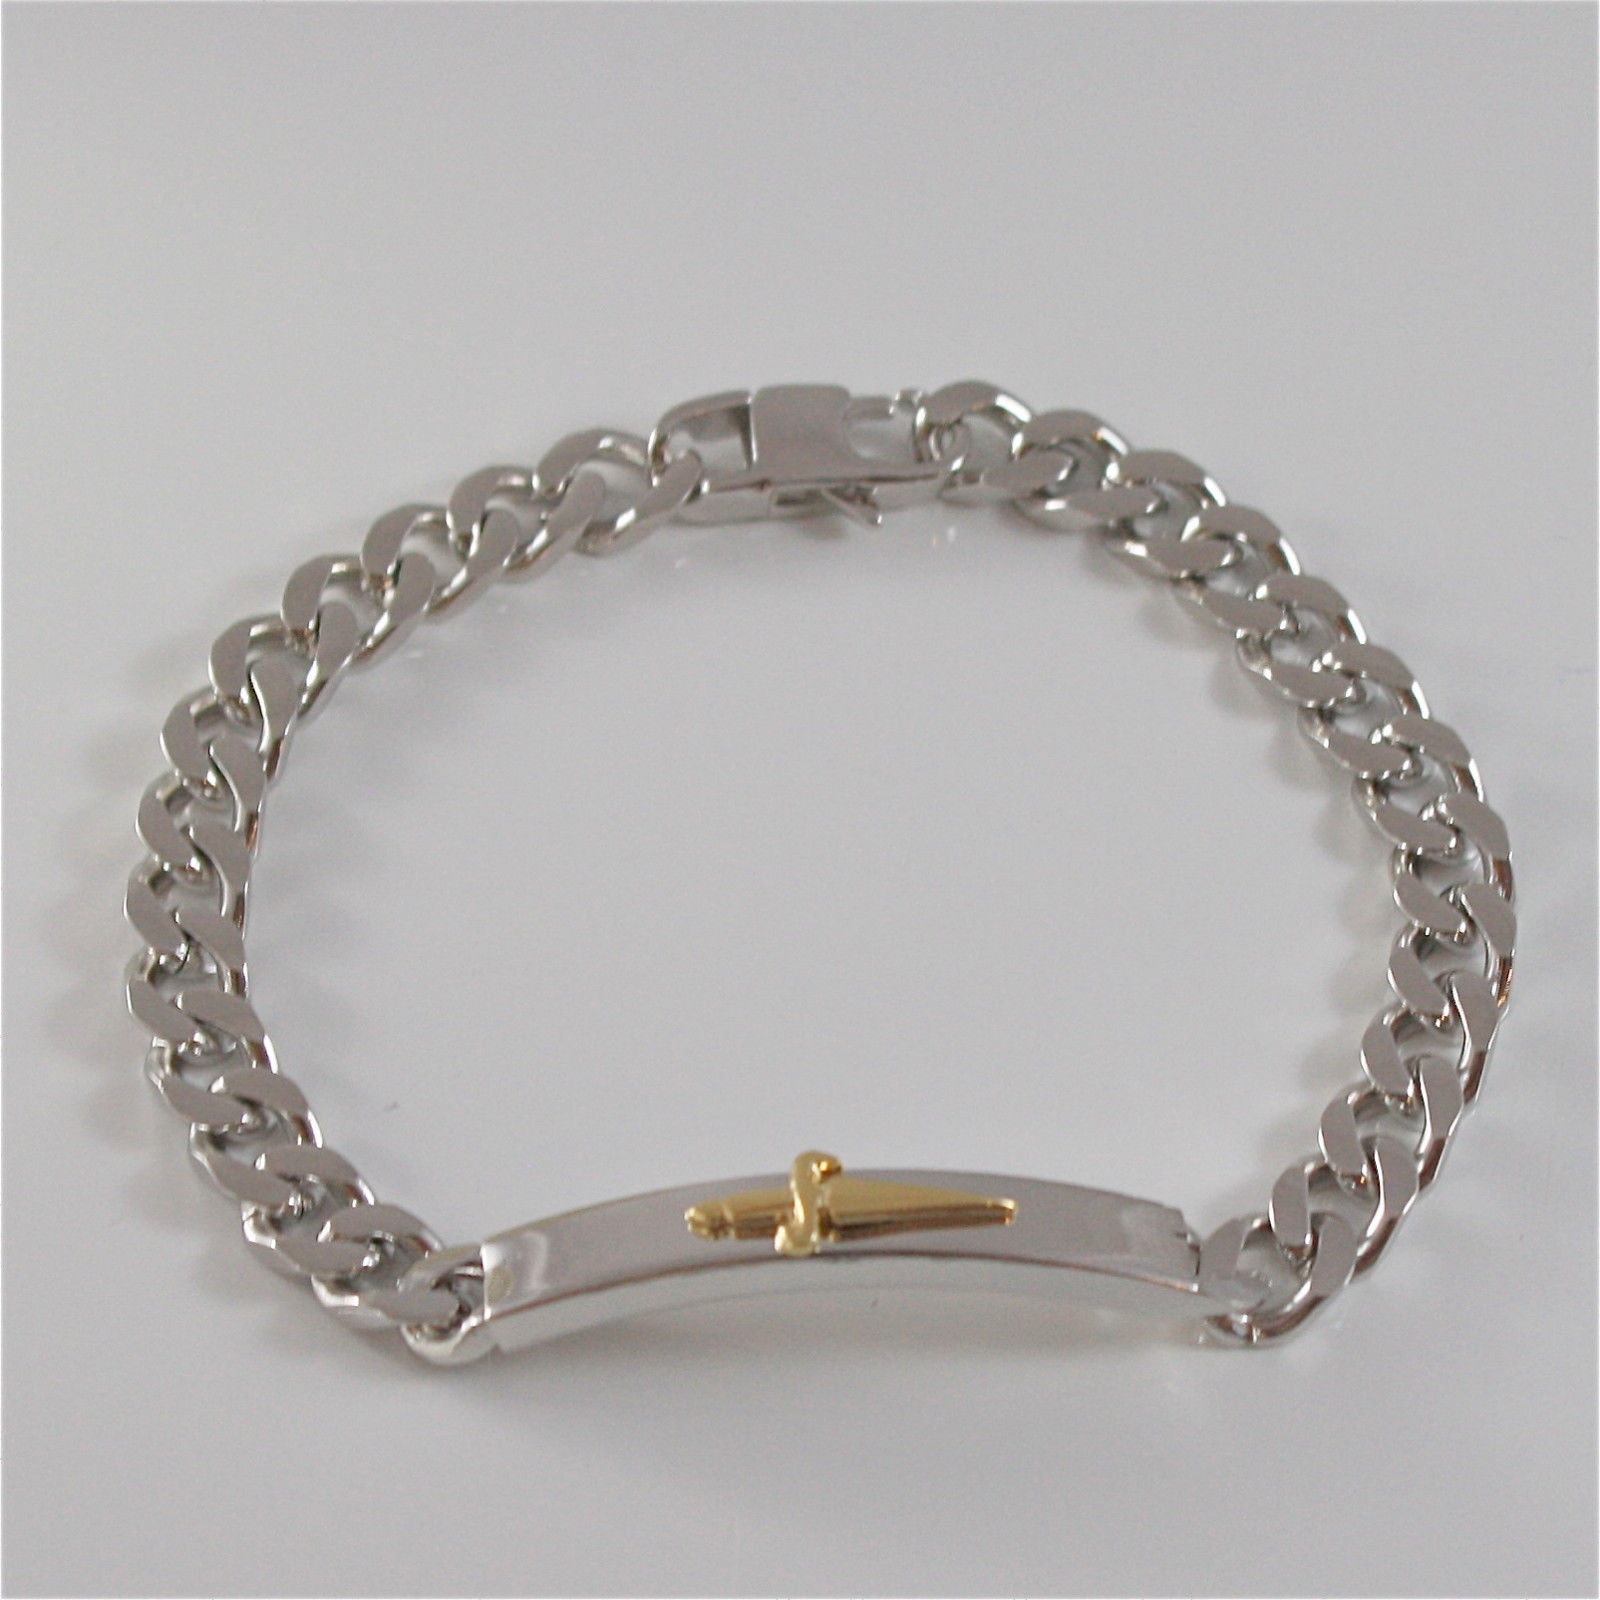 925 SILVER AND STAINLESS STEEL BRACELET BY CESARE PACIOTTI 20 CM JPBR1261B